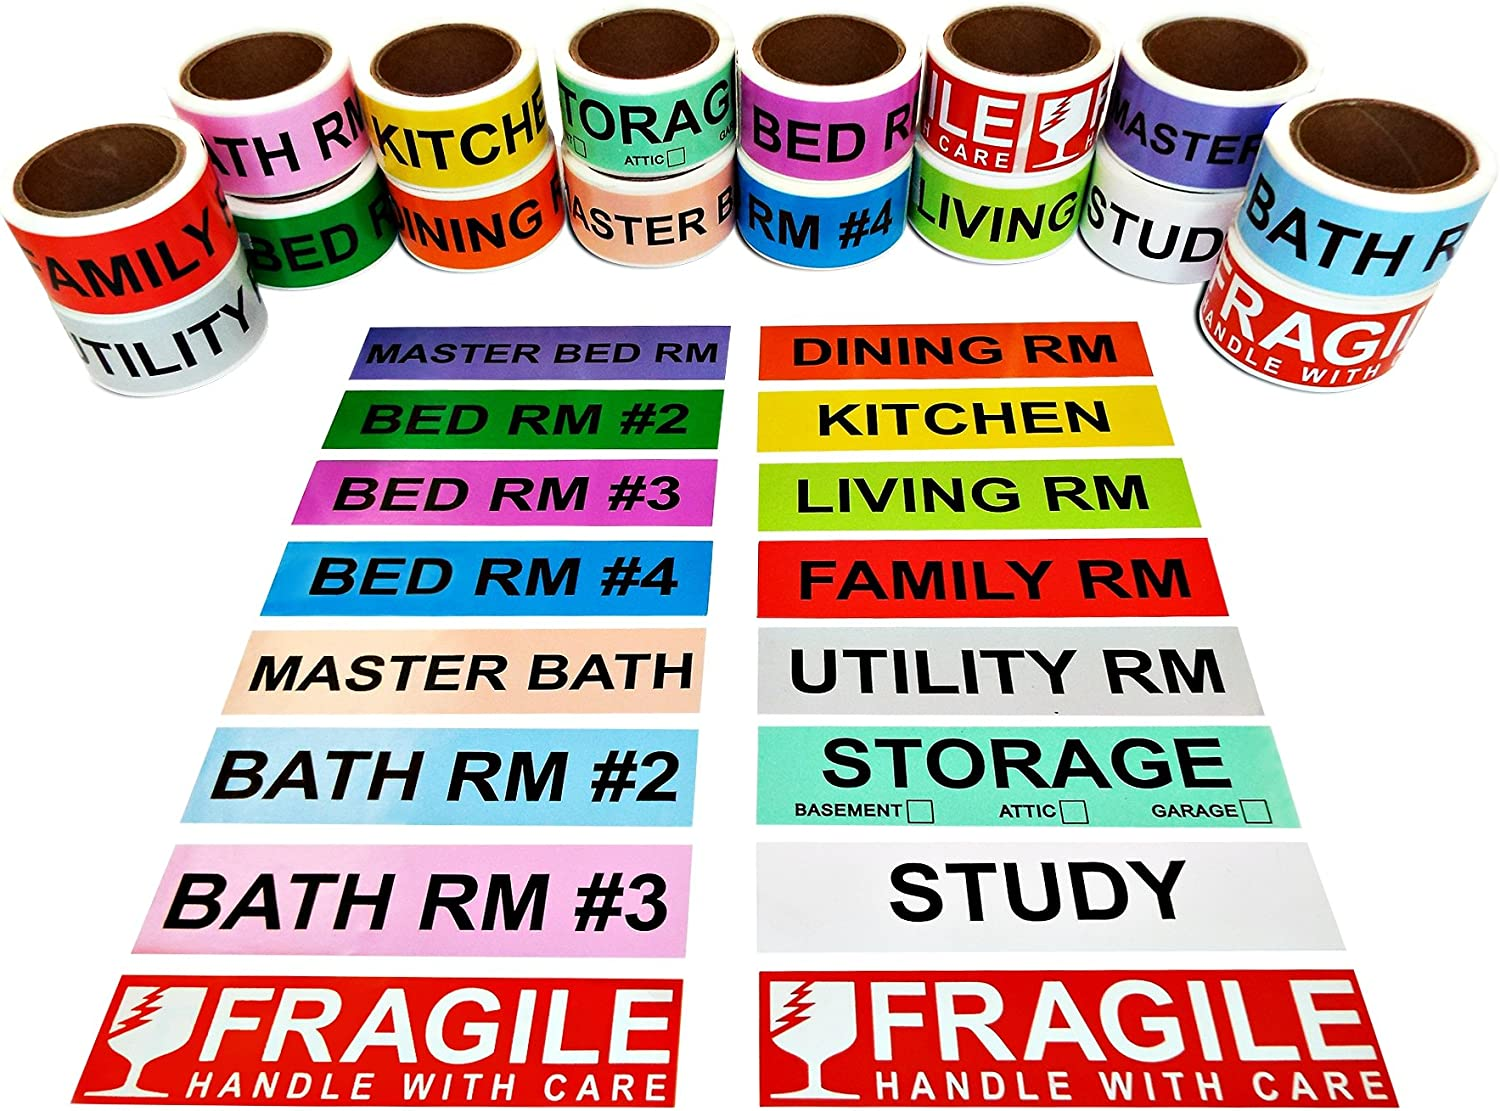 800 Count Home Moving Color Coding Labels, 4 Bedroom House + Fragile Stickers, [14 Different Living Spaces + 2 Rolls Handle with Care, 16 Rolls Total, 50 Labels/Roll, 1 Inch Height X 4.5 Inch Width] : Office Products